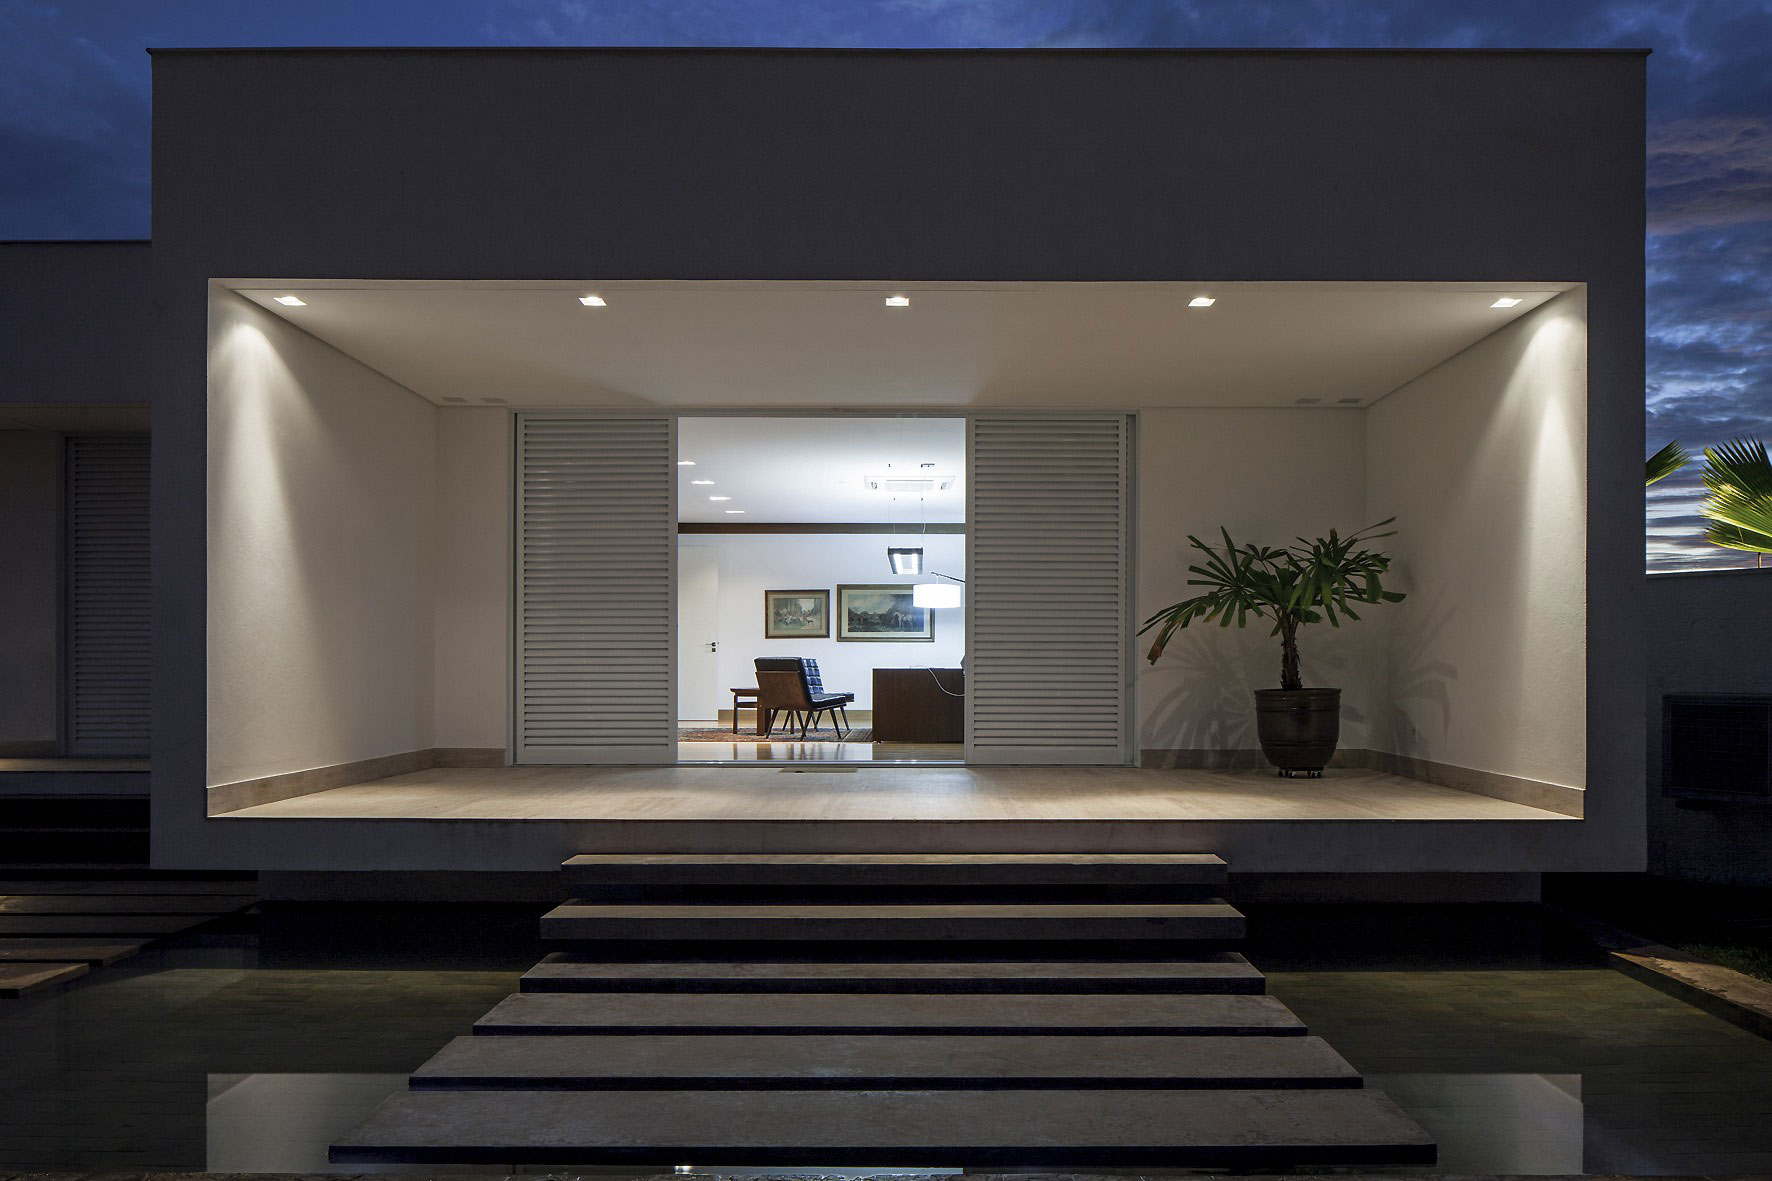 Evening, Lighting, Steps, Terrace, Home in Uberlandia, Brazil